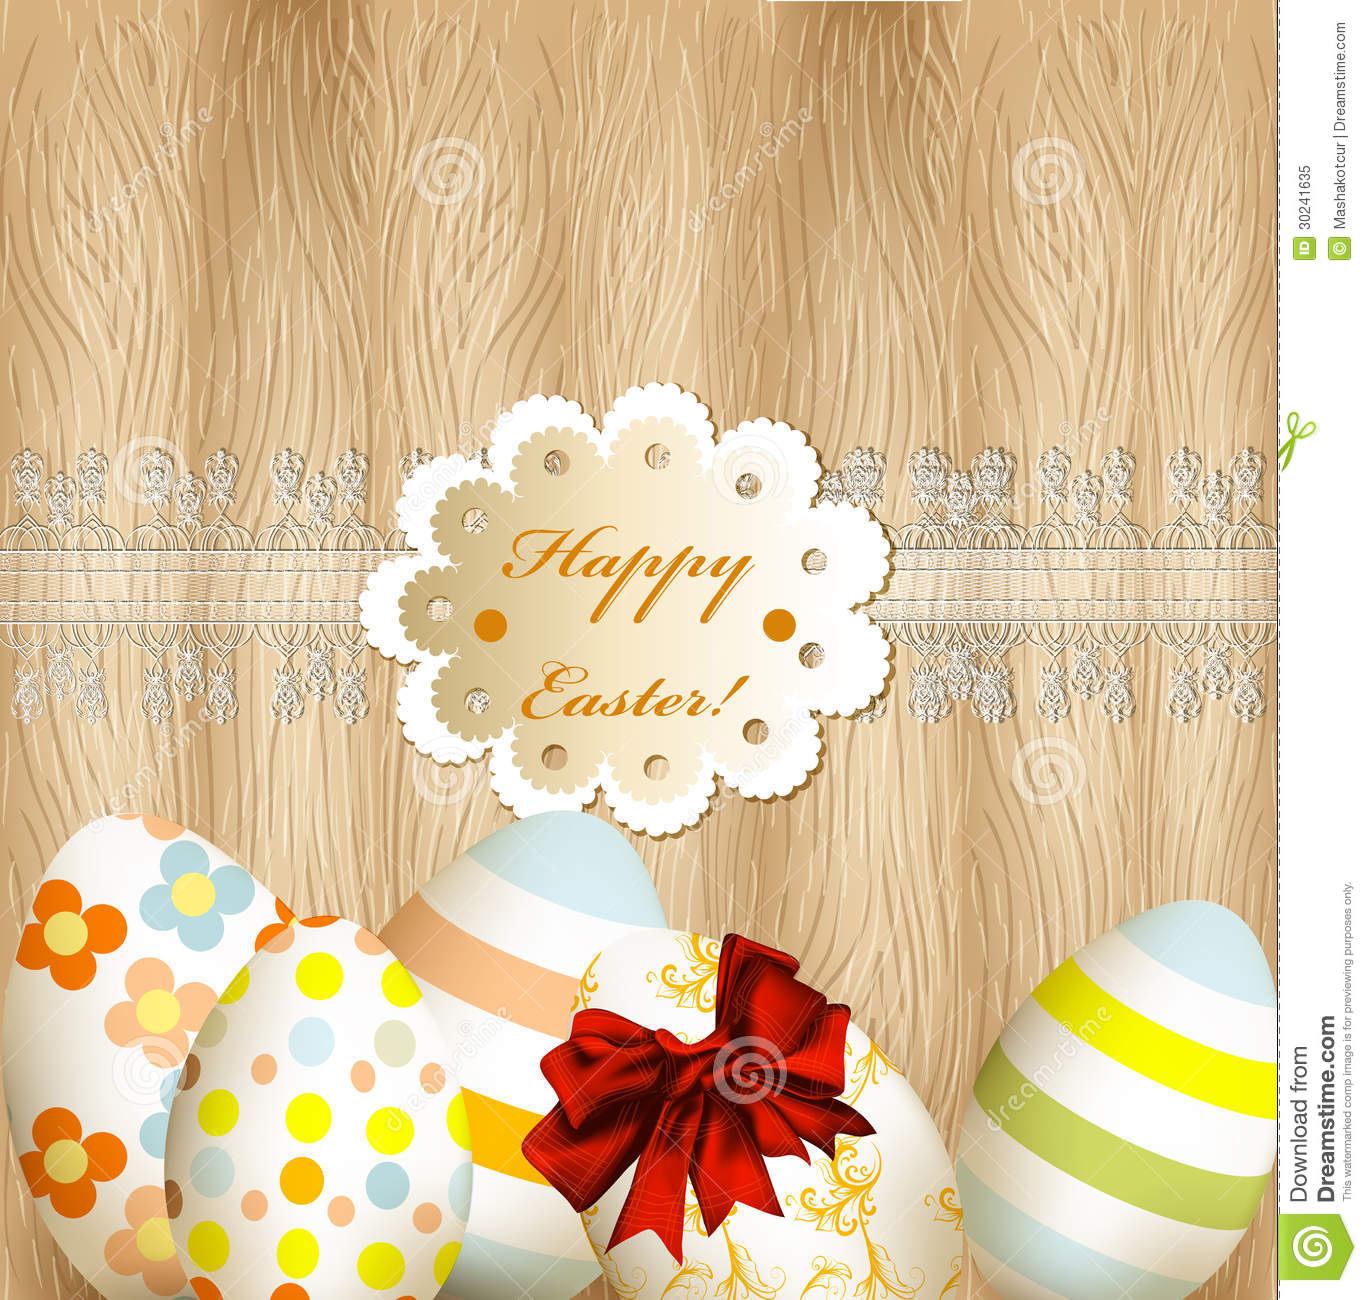 Easter Greeting Card With Eggs, Lace And Banner On Wooden Backgr.